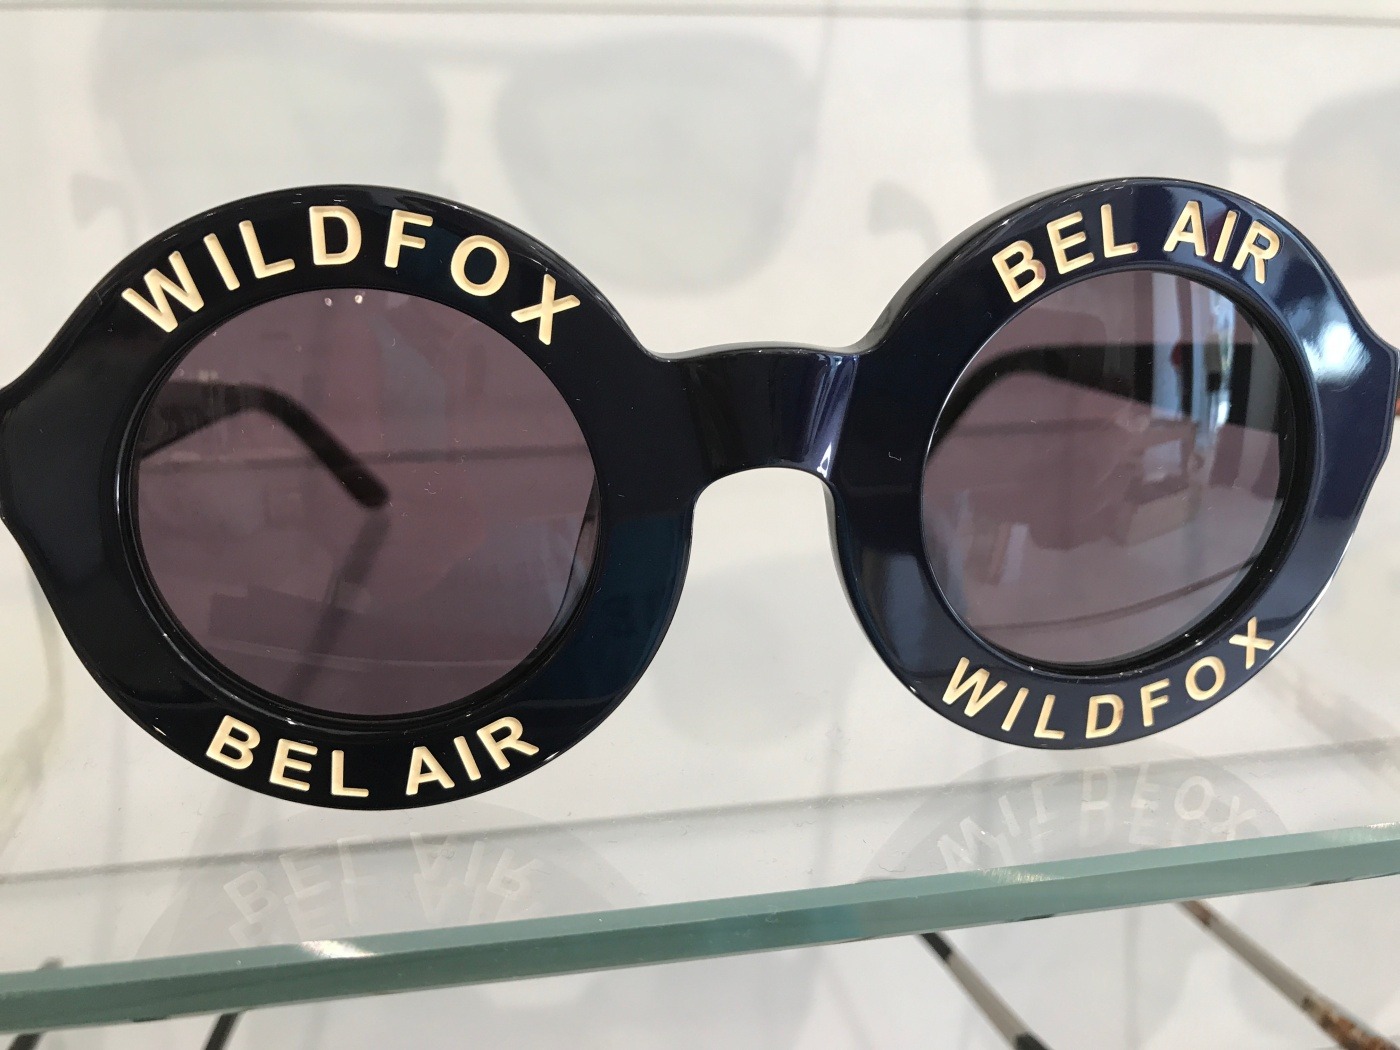 Cali Girl Cool - Black 'Bel Air' 44mm Sunglasses From Wildfox in West Hollywood, California